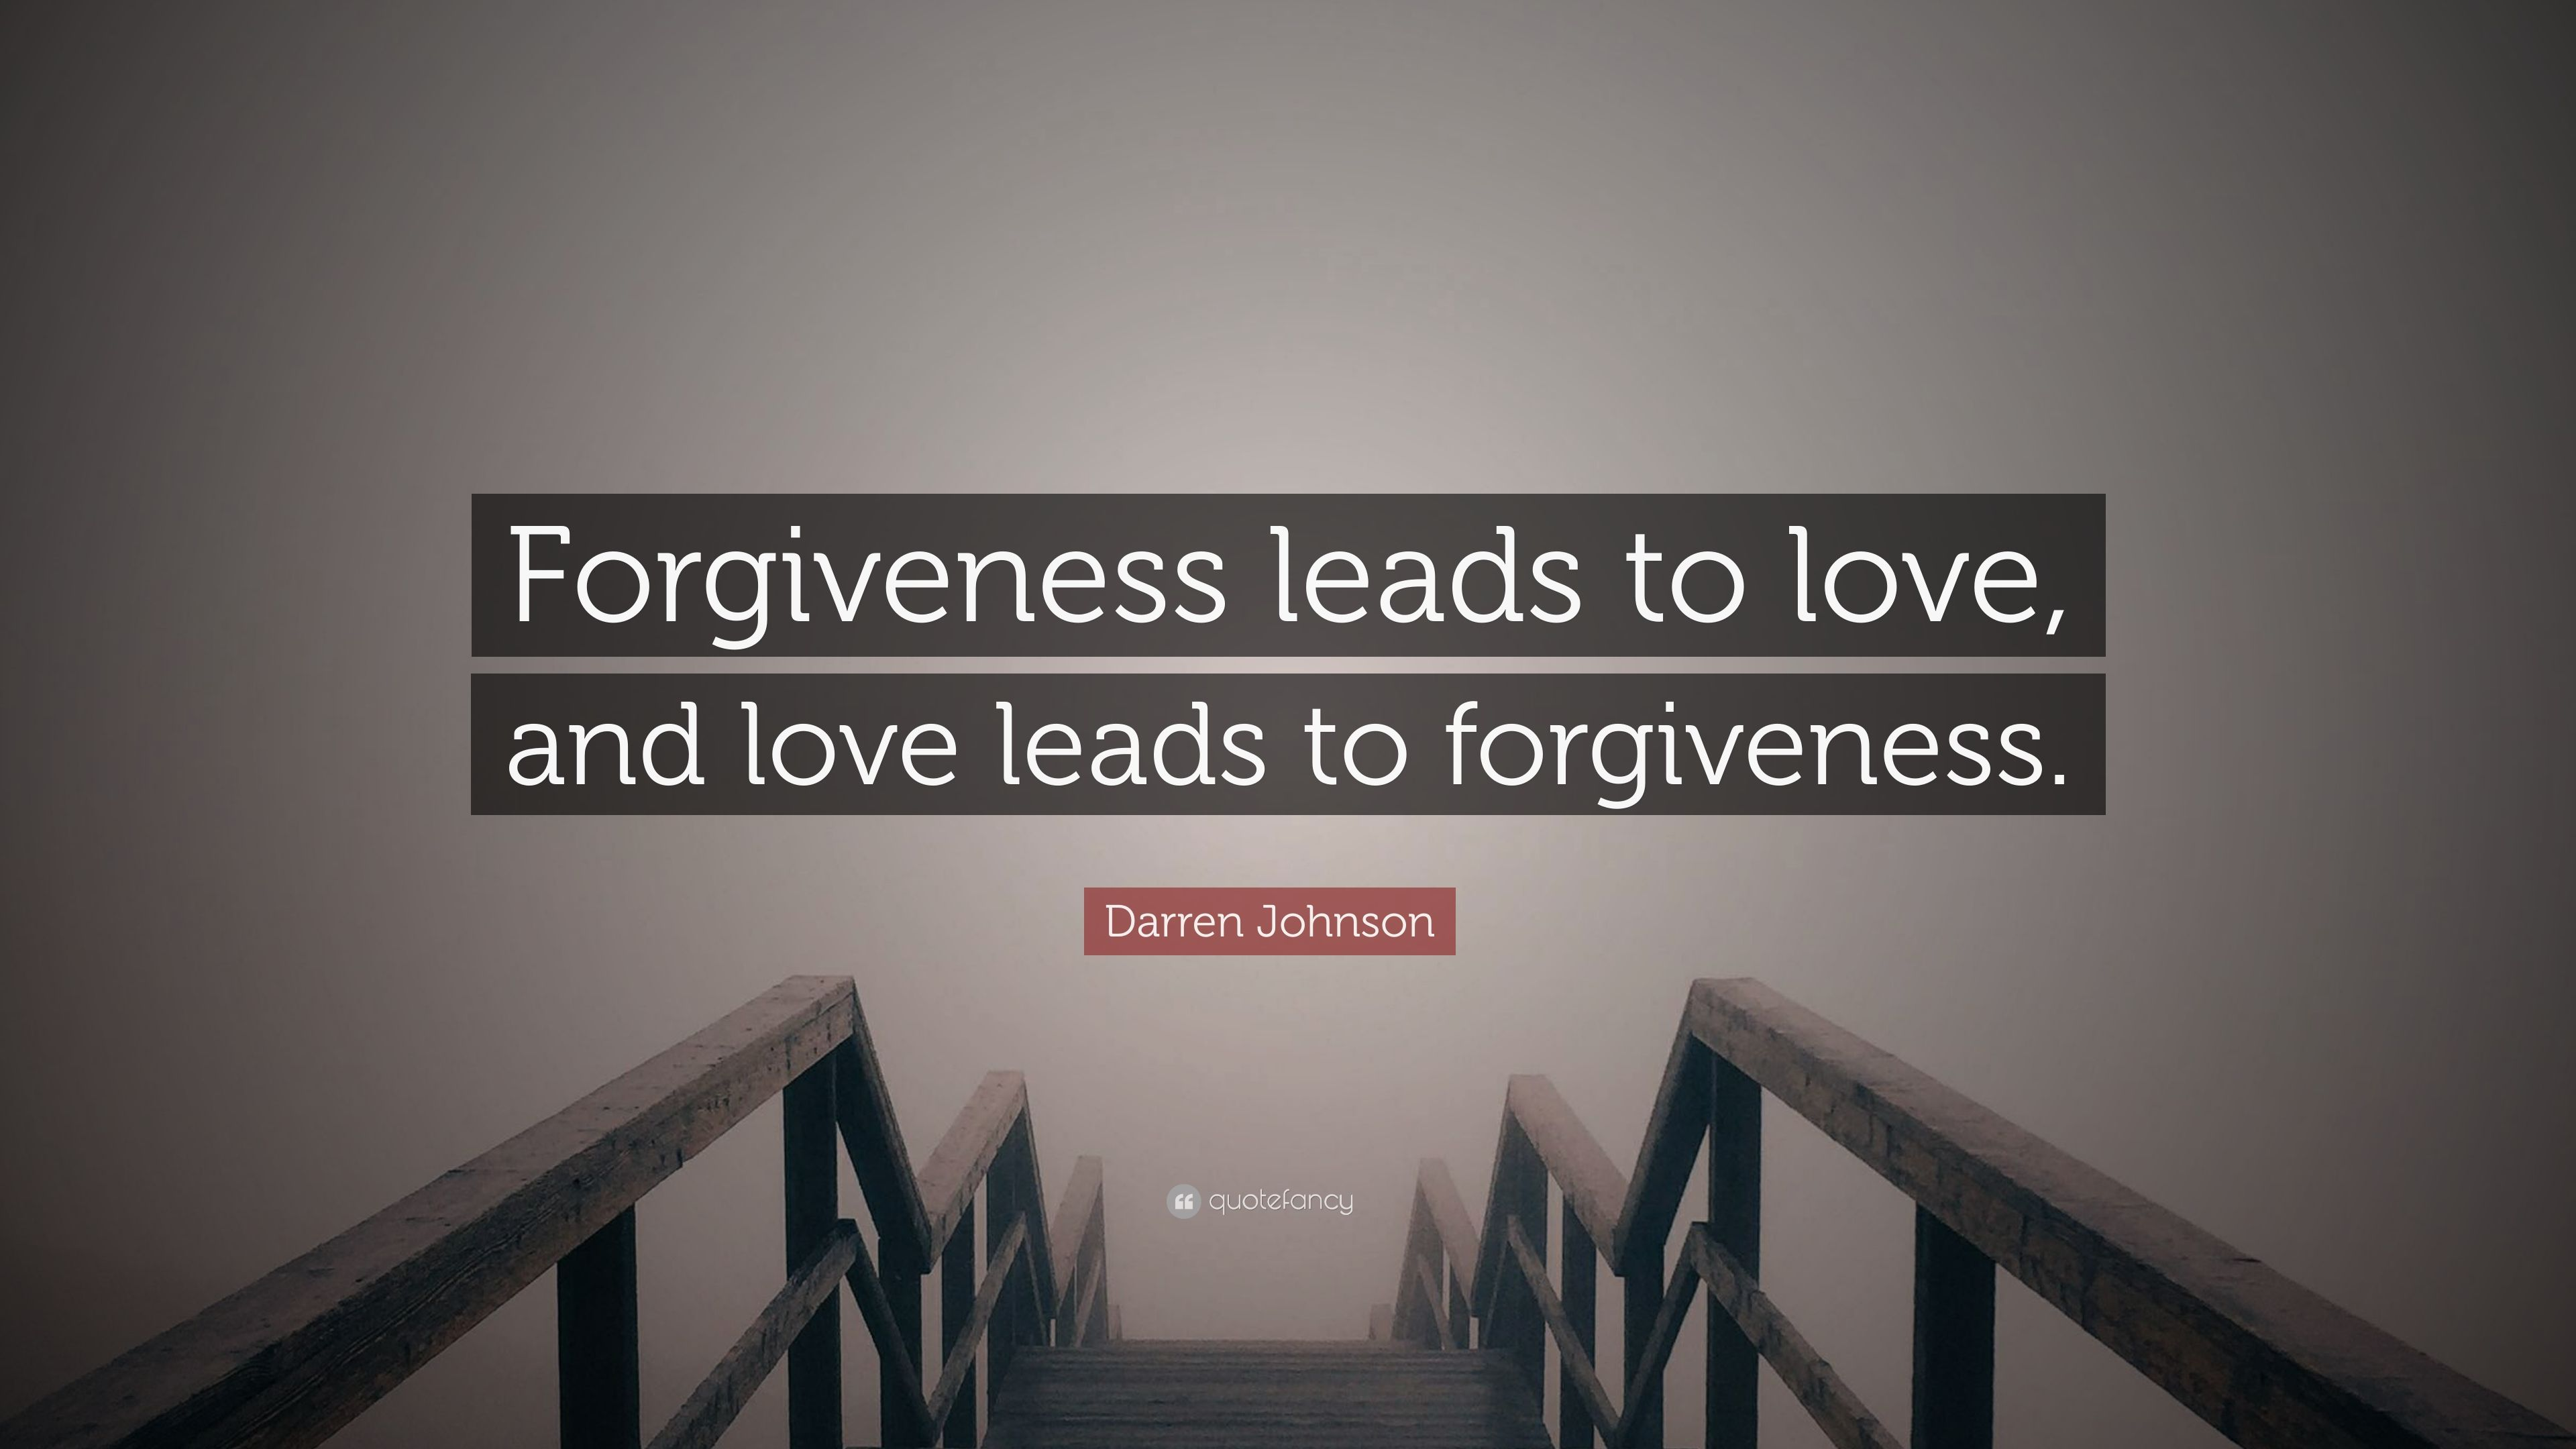 Merveilleux Darren Johnson Quote: U201cForgiveness Leads To Love, And Love Leads To  Forgiveness.